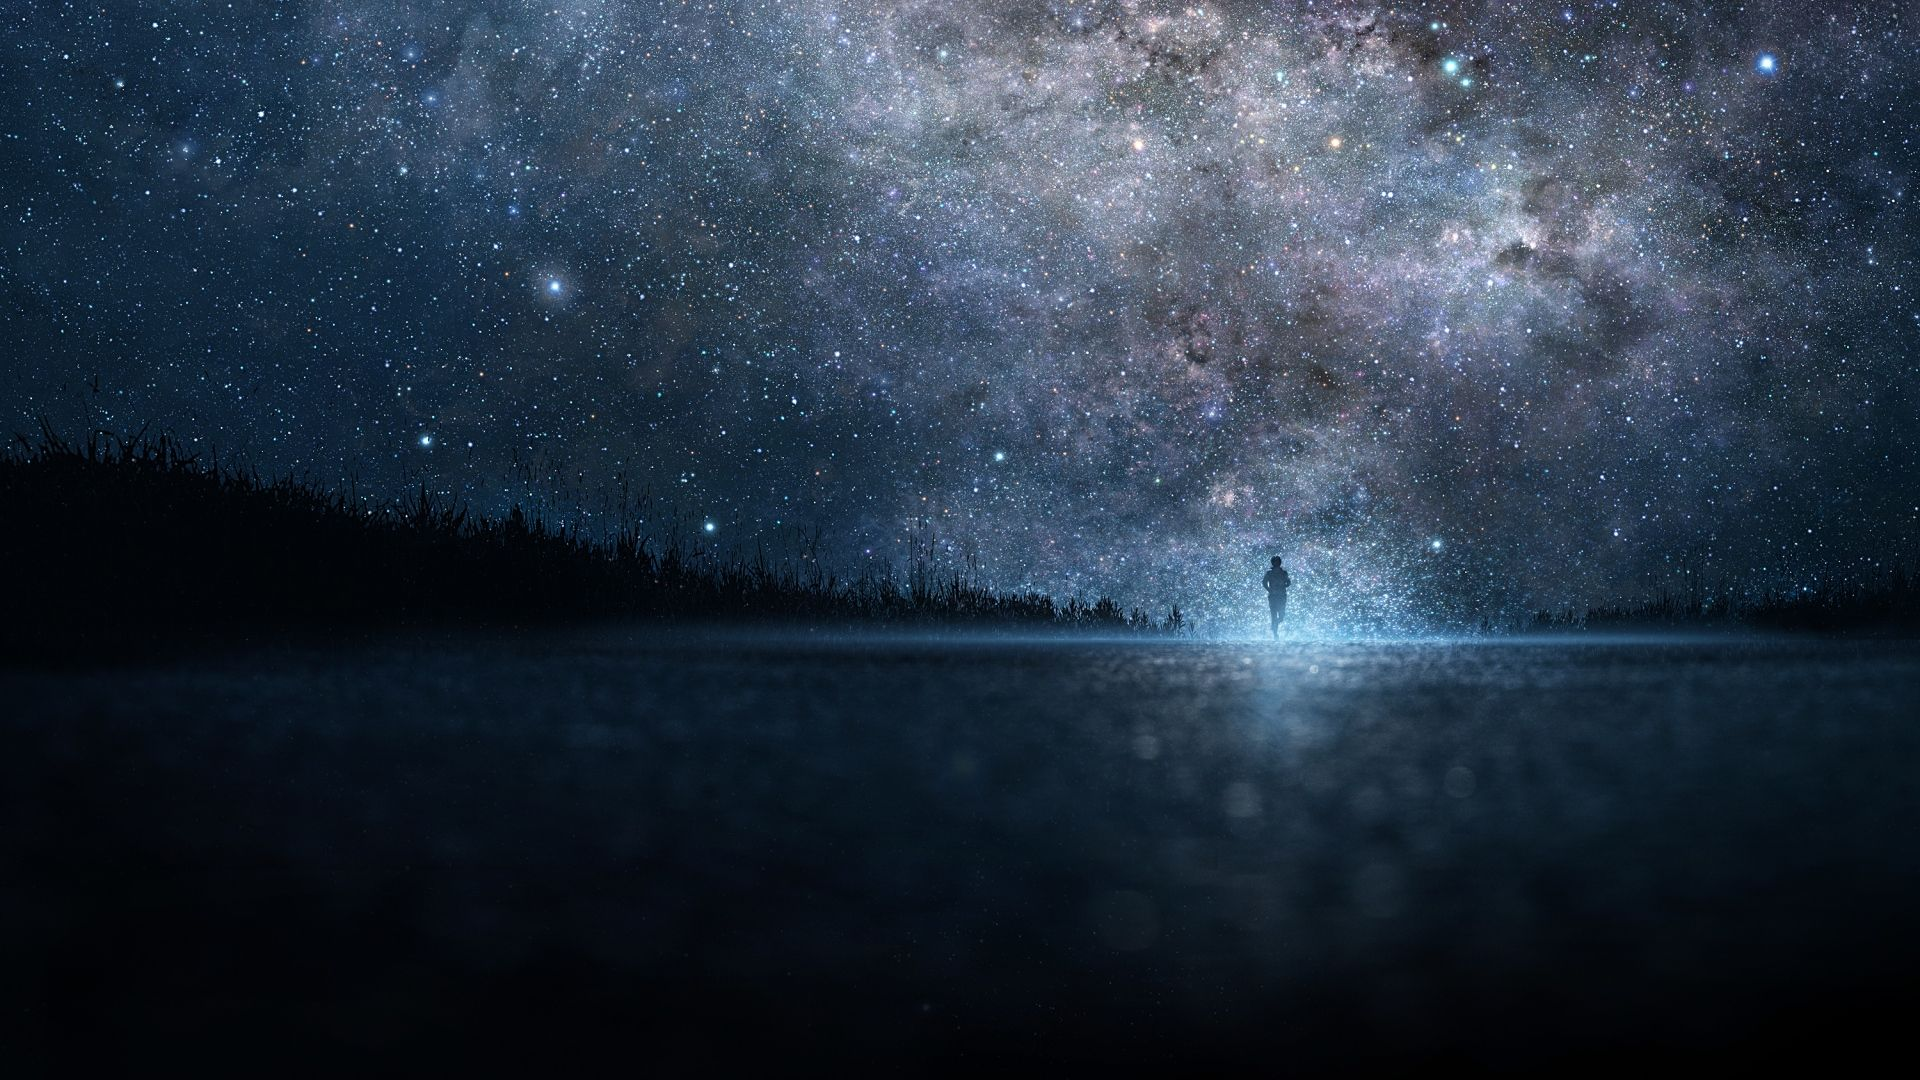 1920x1080 Wallpaper Star Art Sky Night People Silhouette Com